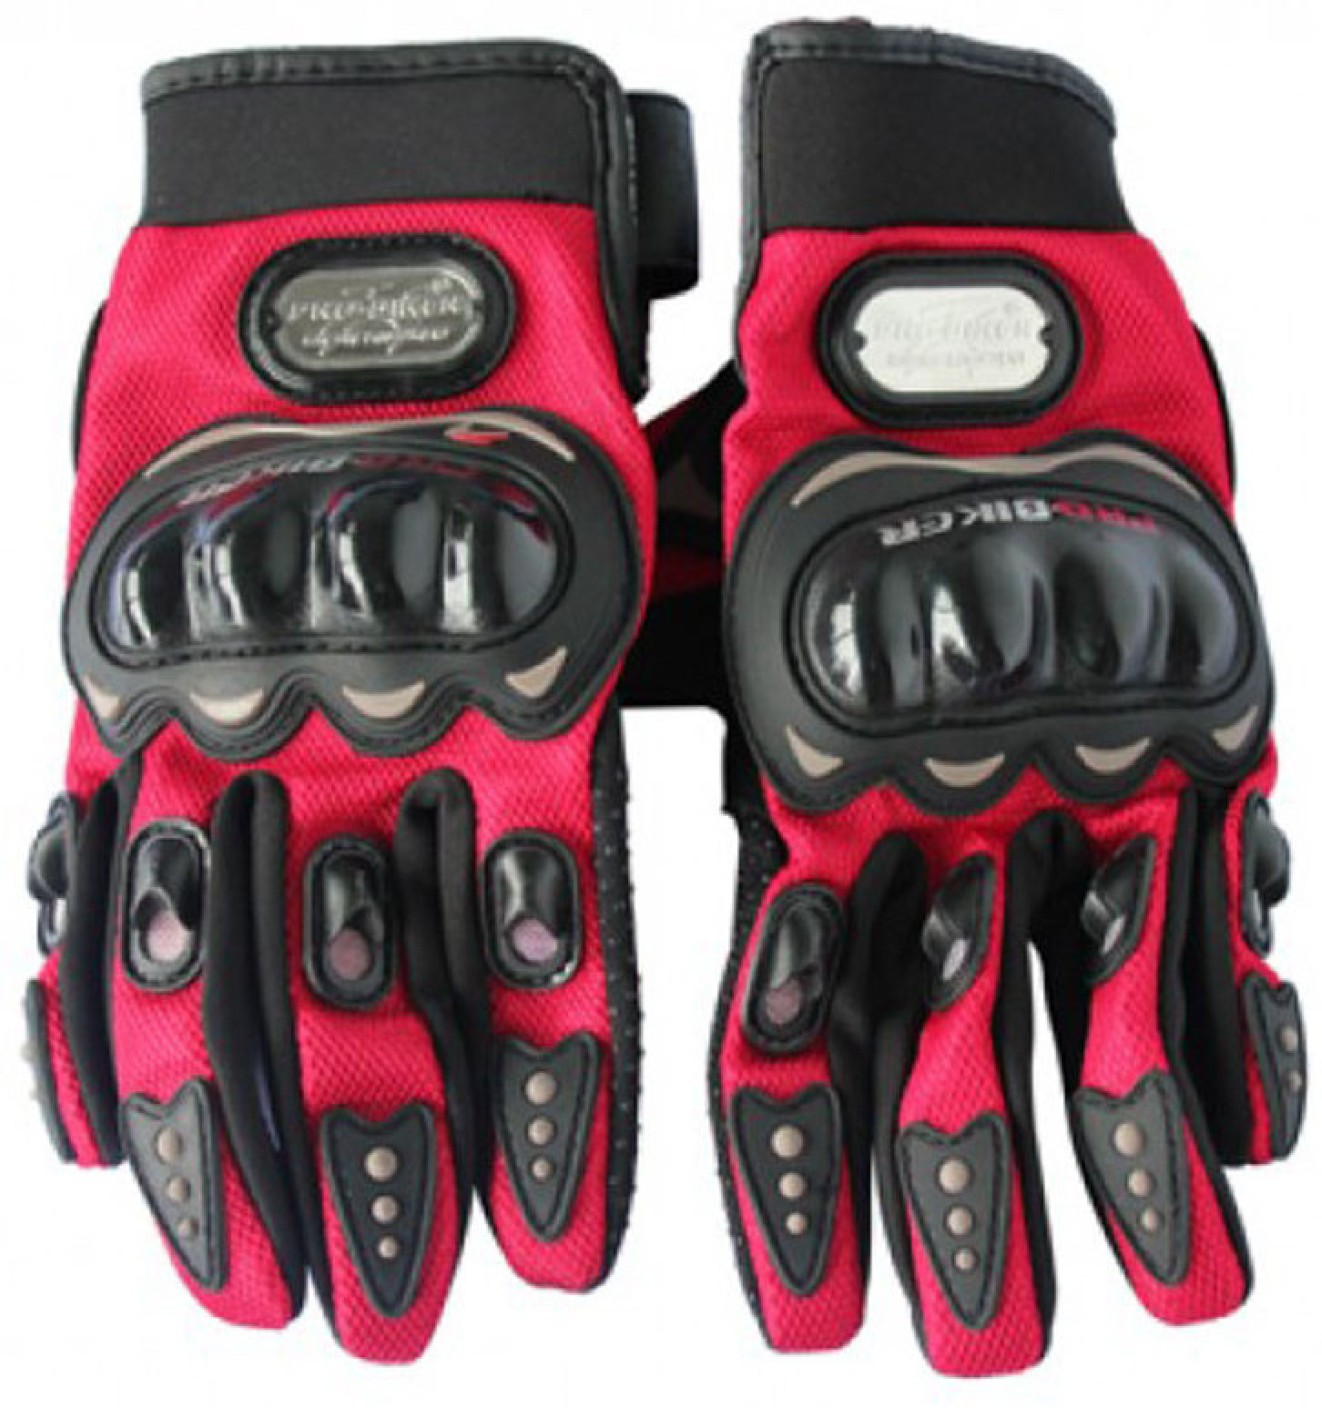 Motorcycle gloves bangalore - On Sale